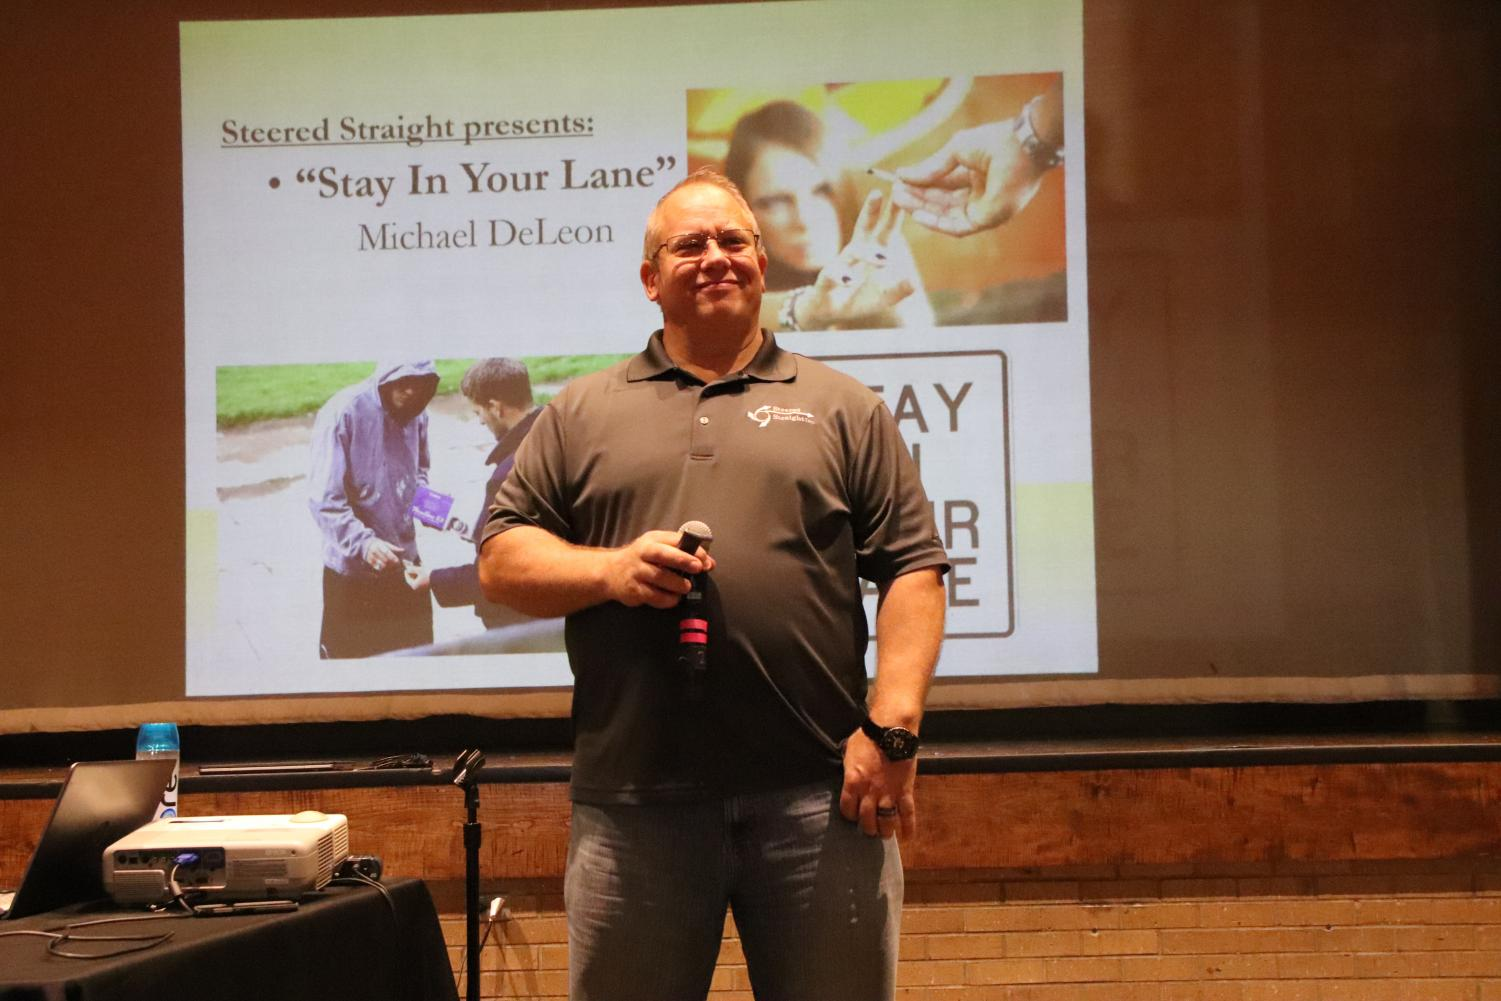 Michael DeLeon gives a presentation on the dangers of drug consumption on Tuesday, Oct. 1.